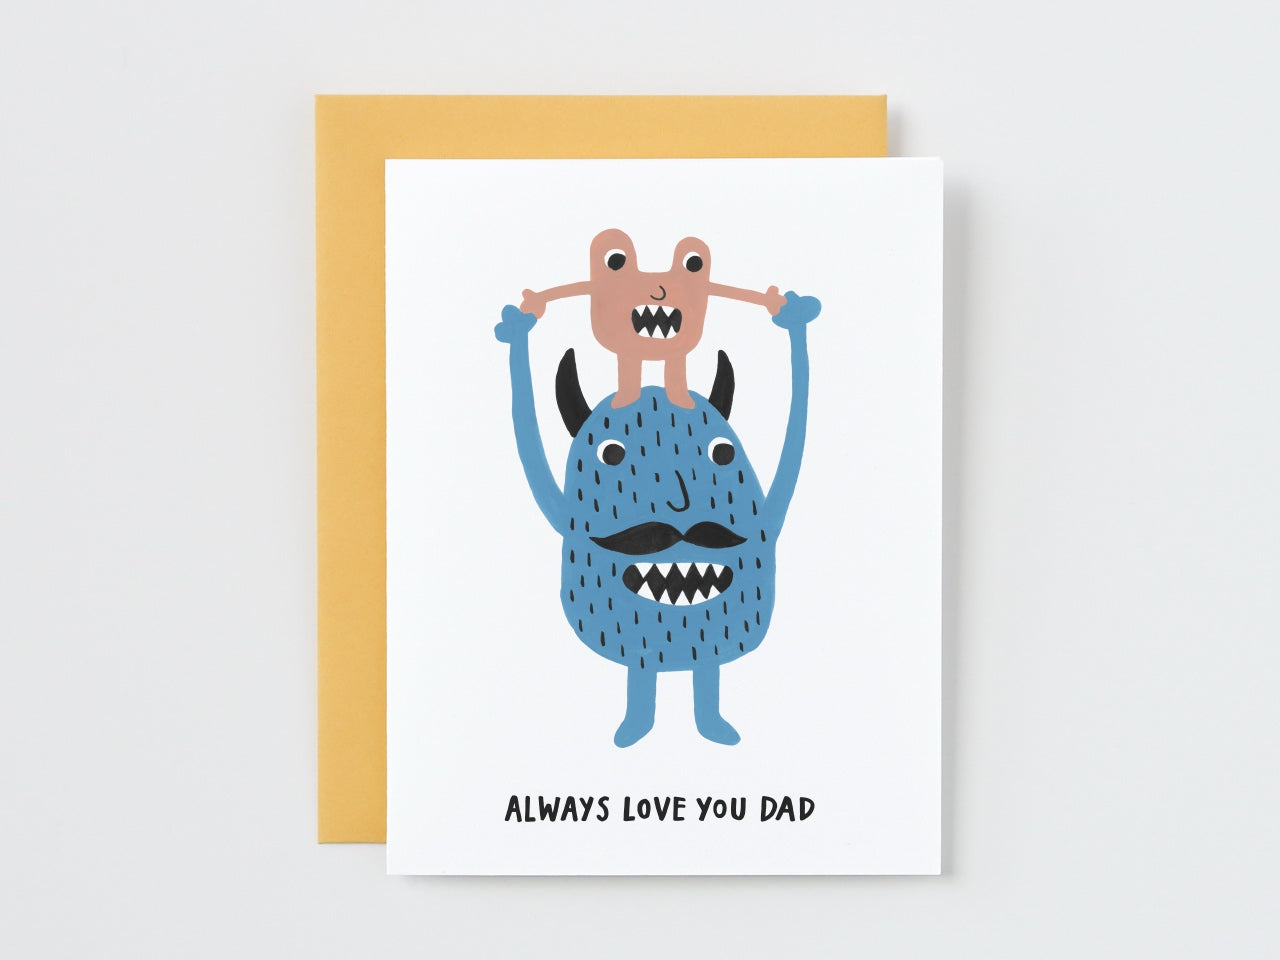 Monster Dad and Baby Always Love You Dad Card